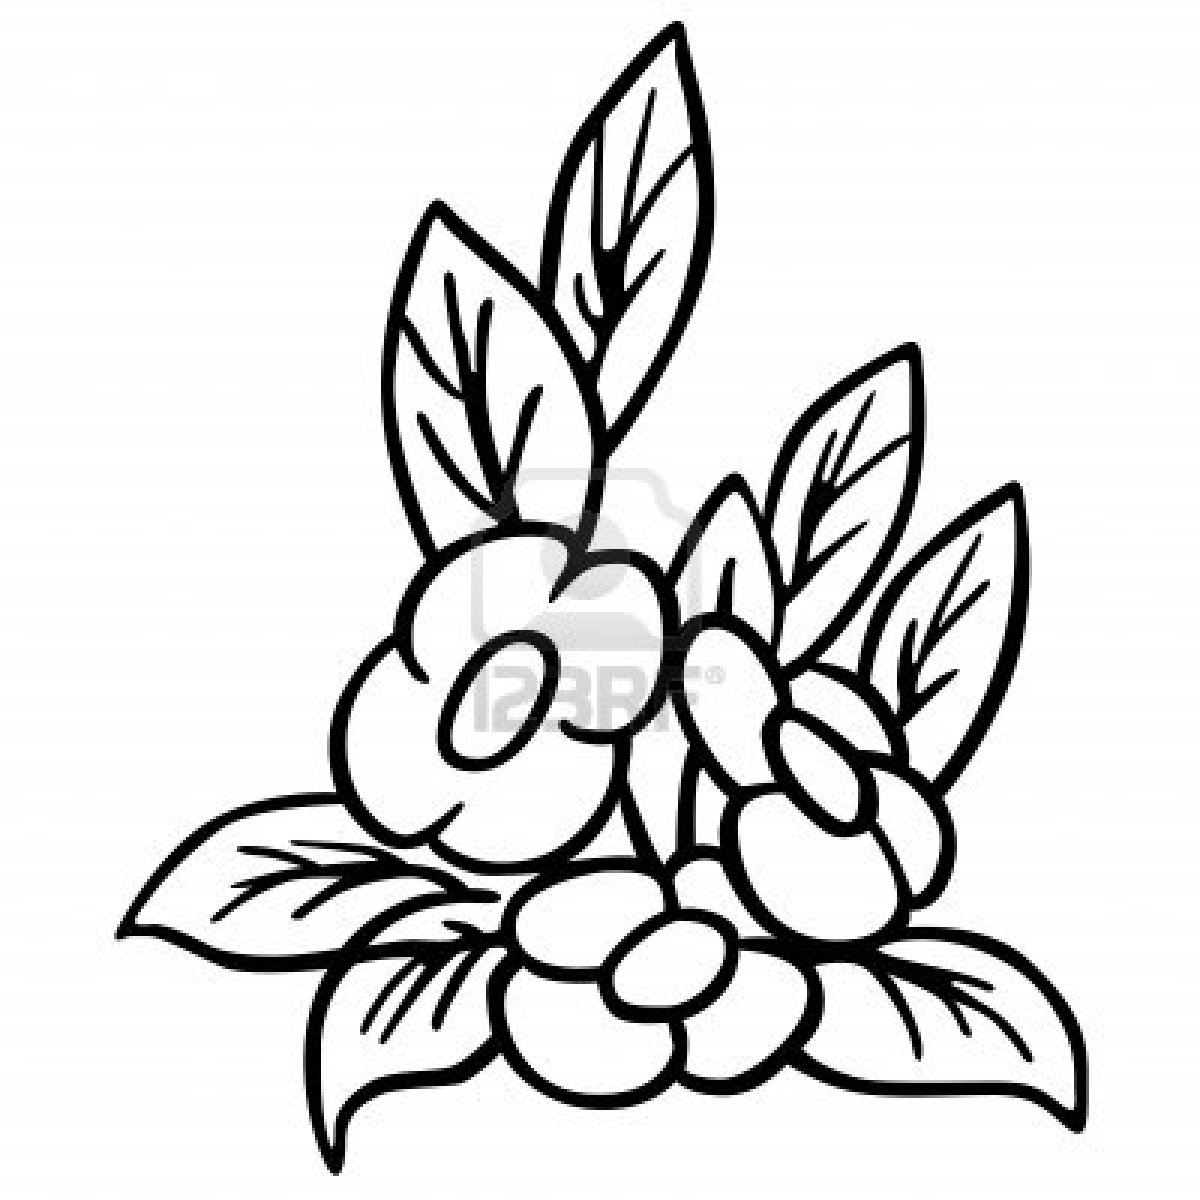 1200x1200 Simple Drawings Of Flowers In Black And White Best Ideas About